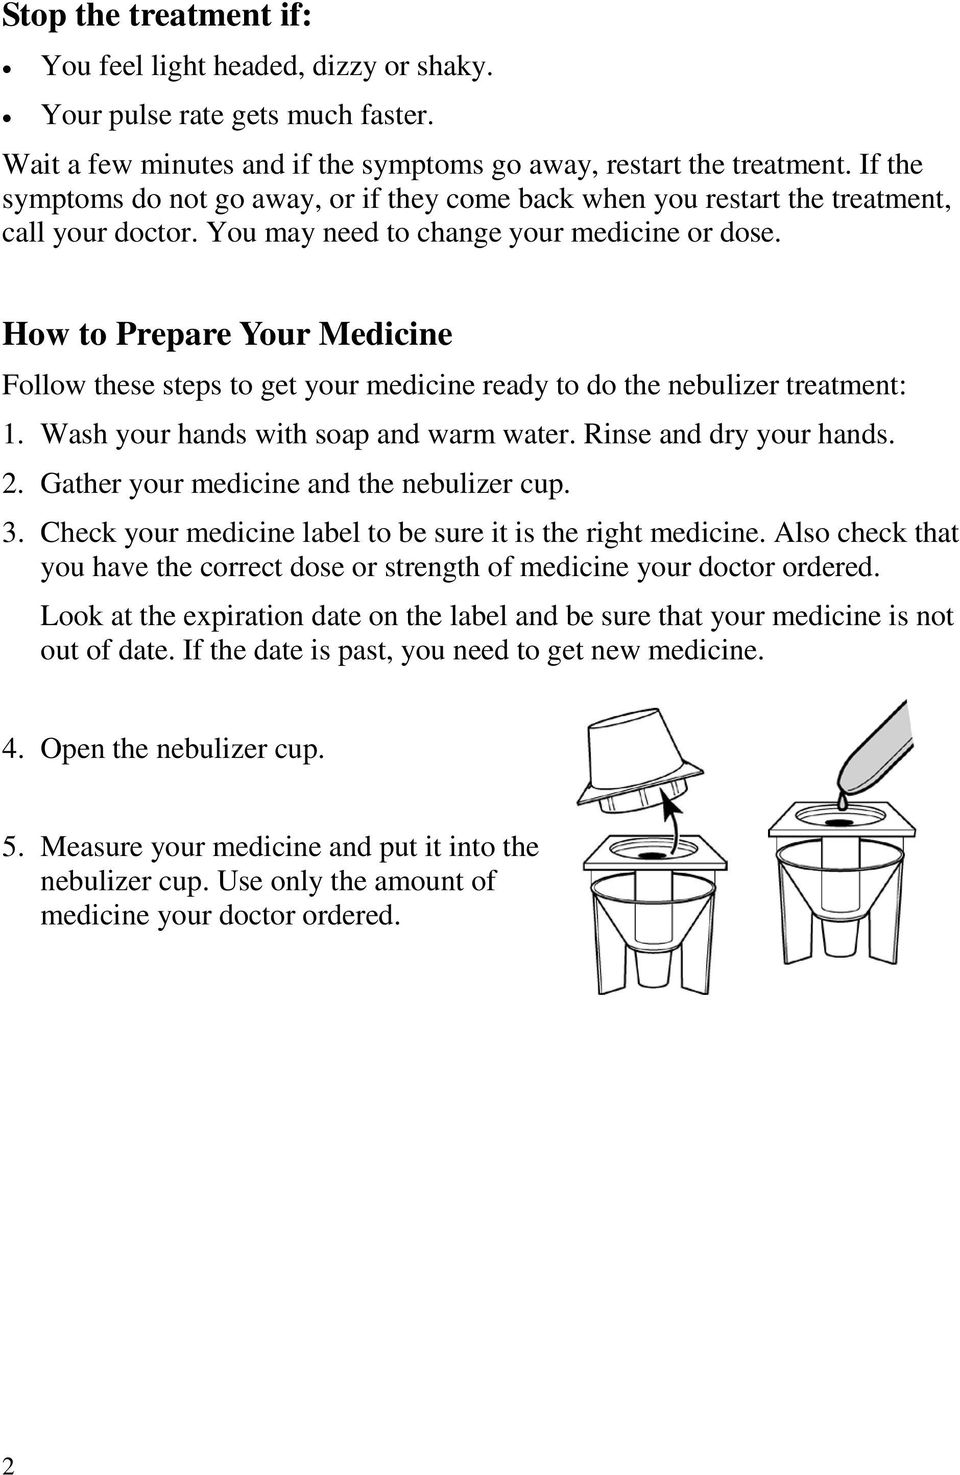 How to Prepare Your Medicine Follow these steps to get your medicine ready to do the nebulizer treatment: 1. Wash your hands with soap and warm water. Rinse and dry your hands. 2.